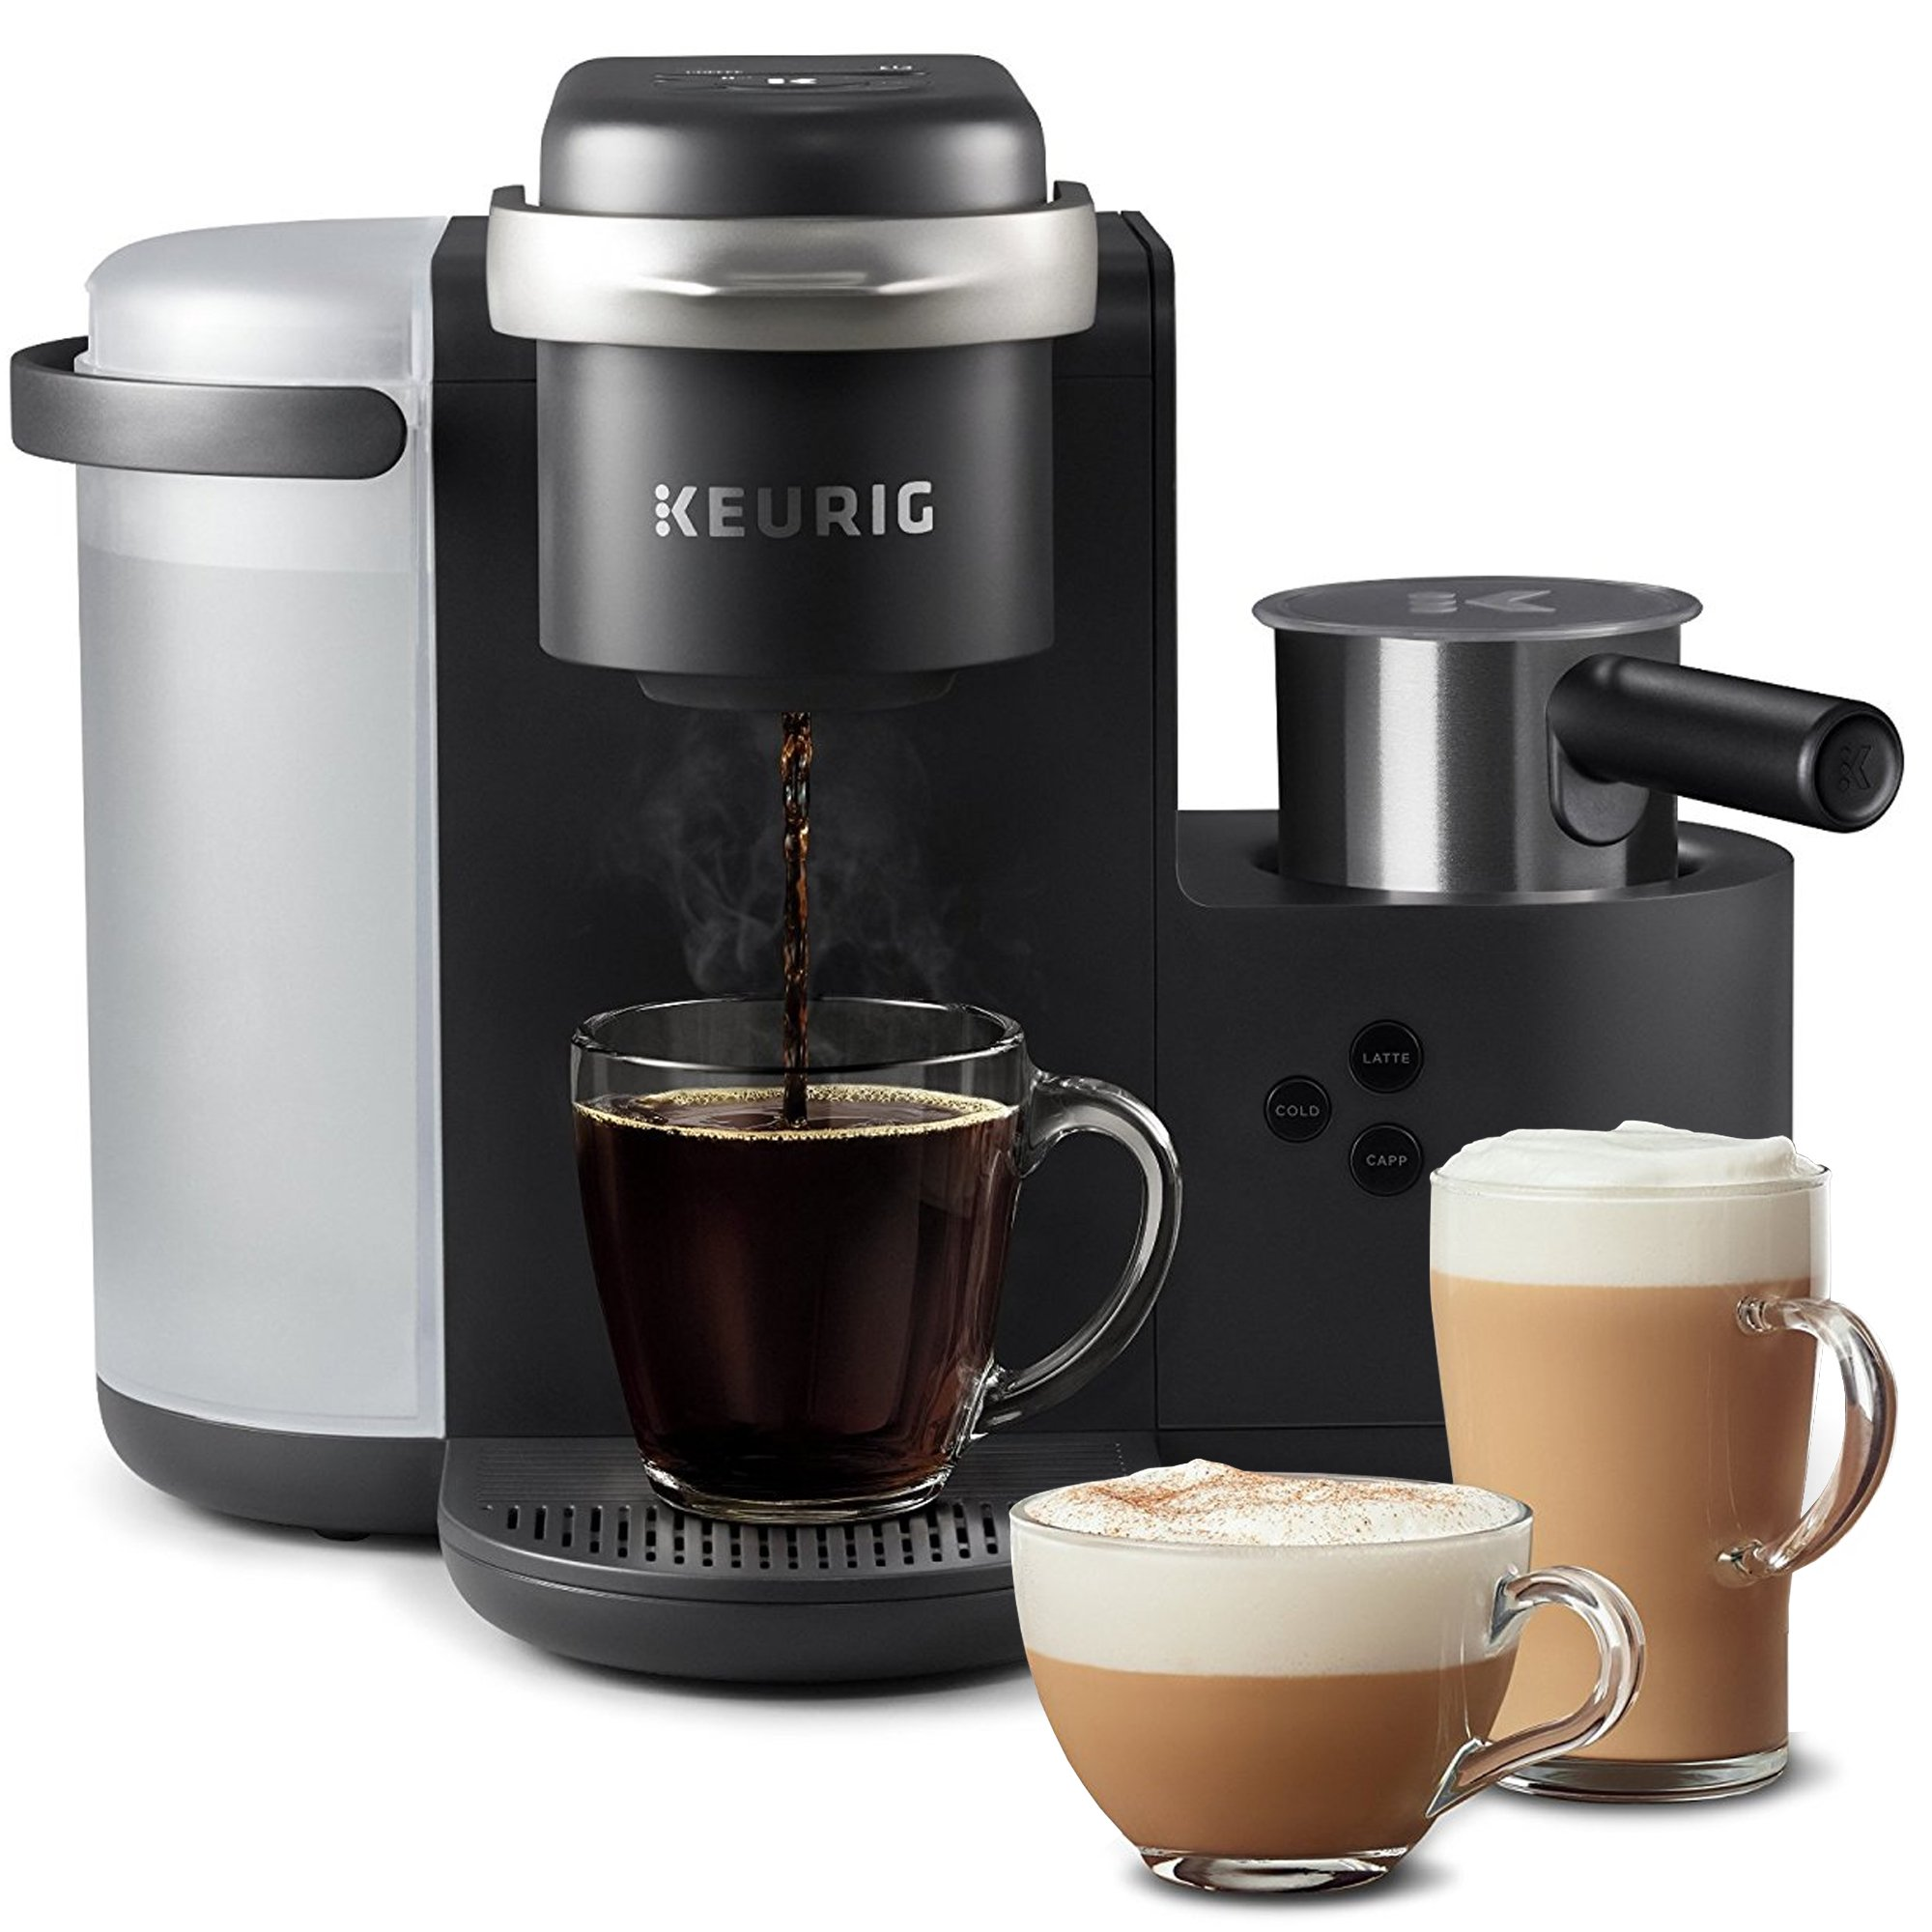 Keurig K-Cafe Coffee Maker, Single Serve